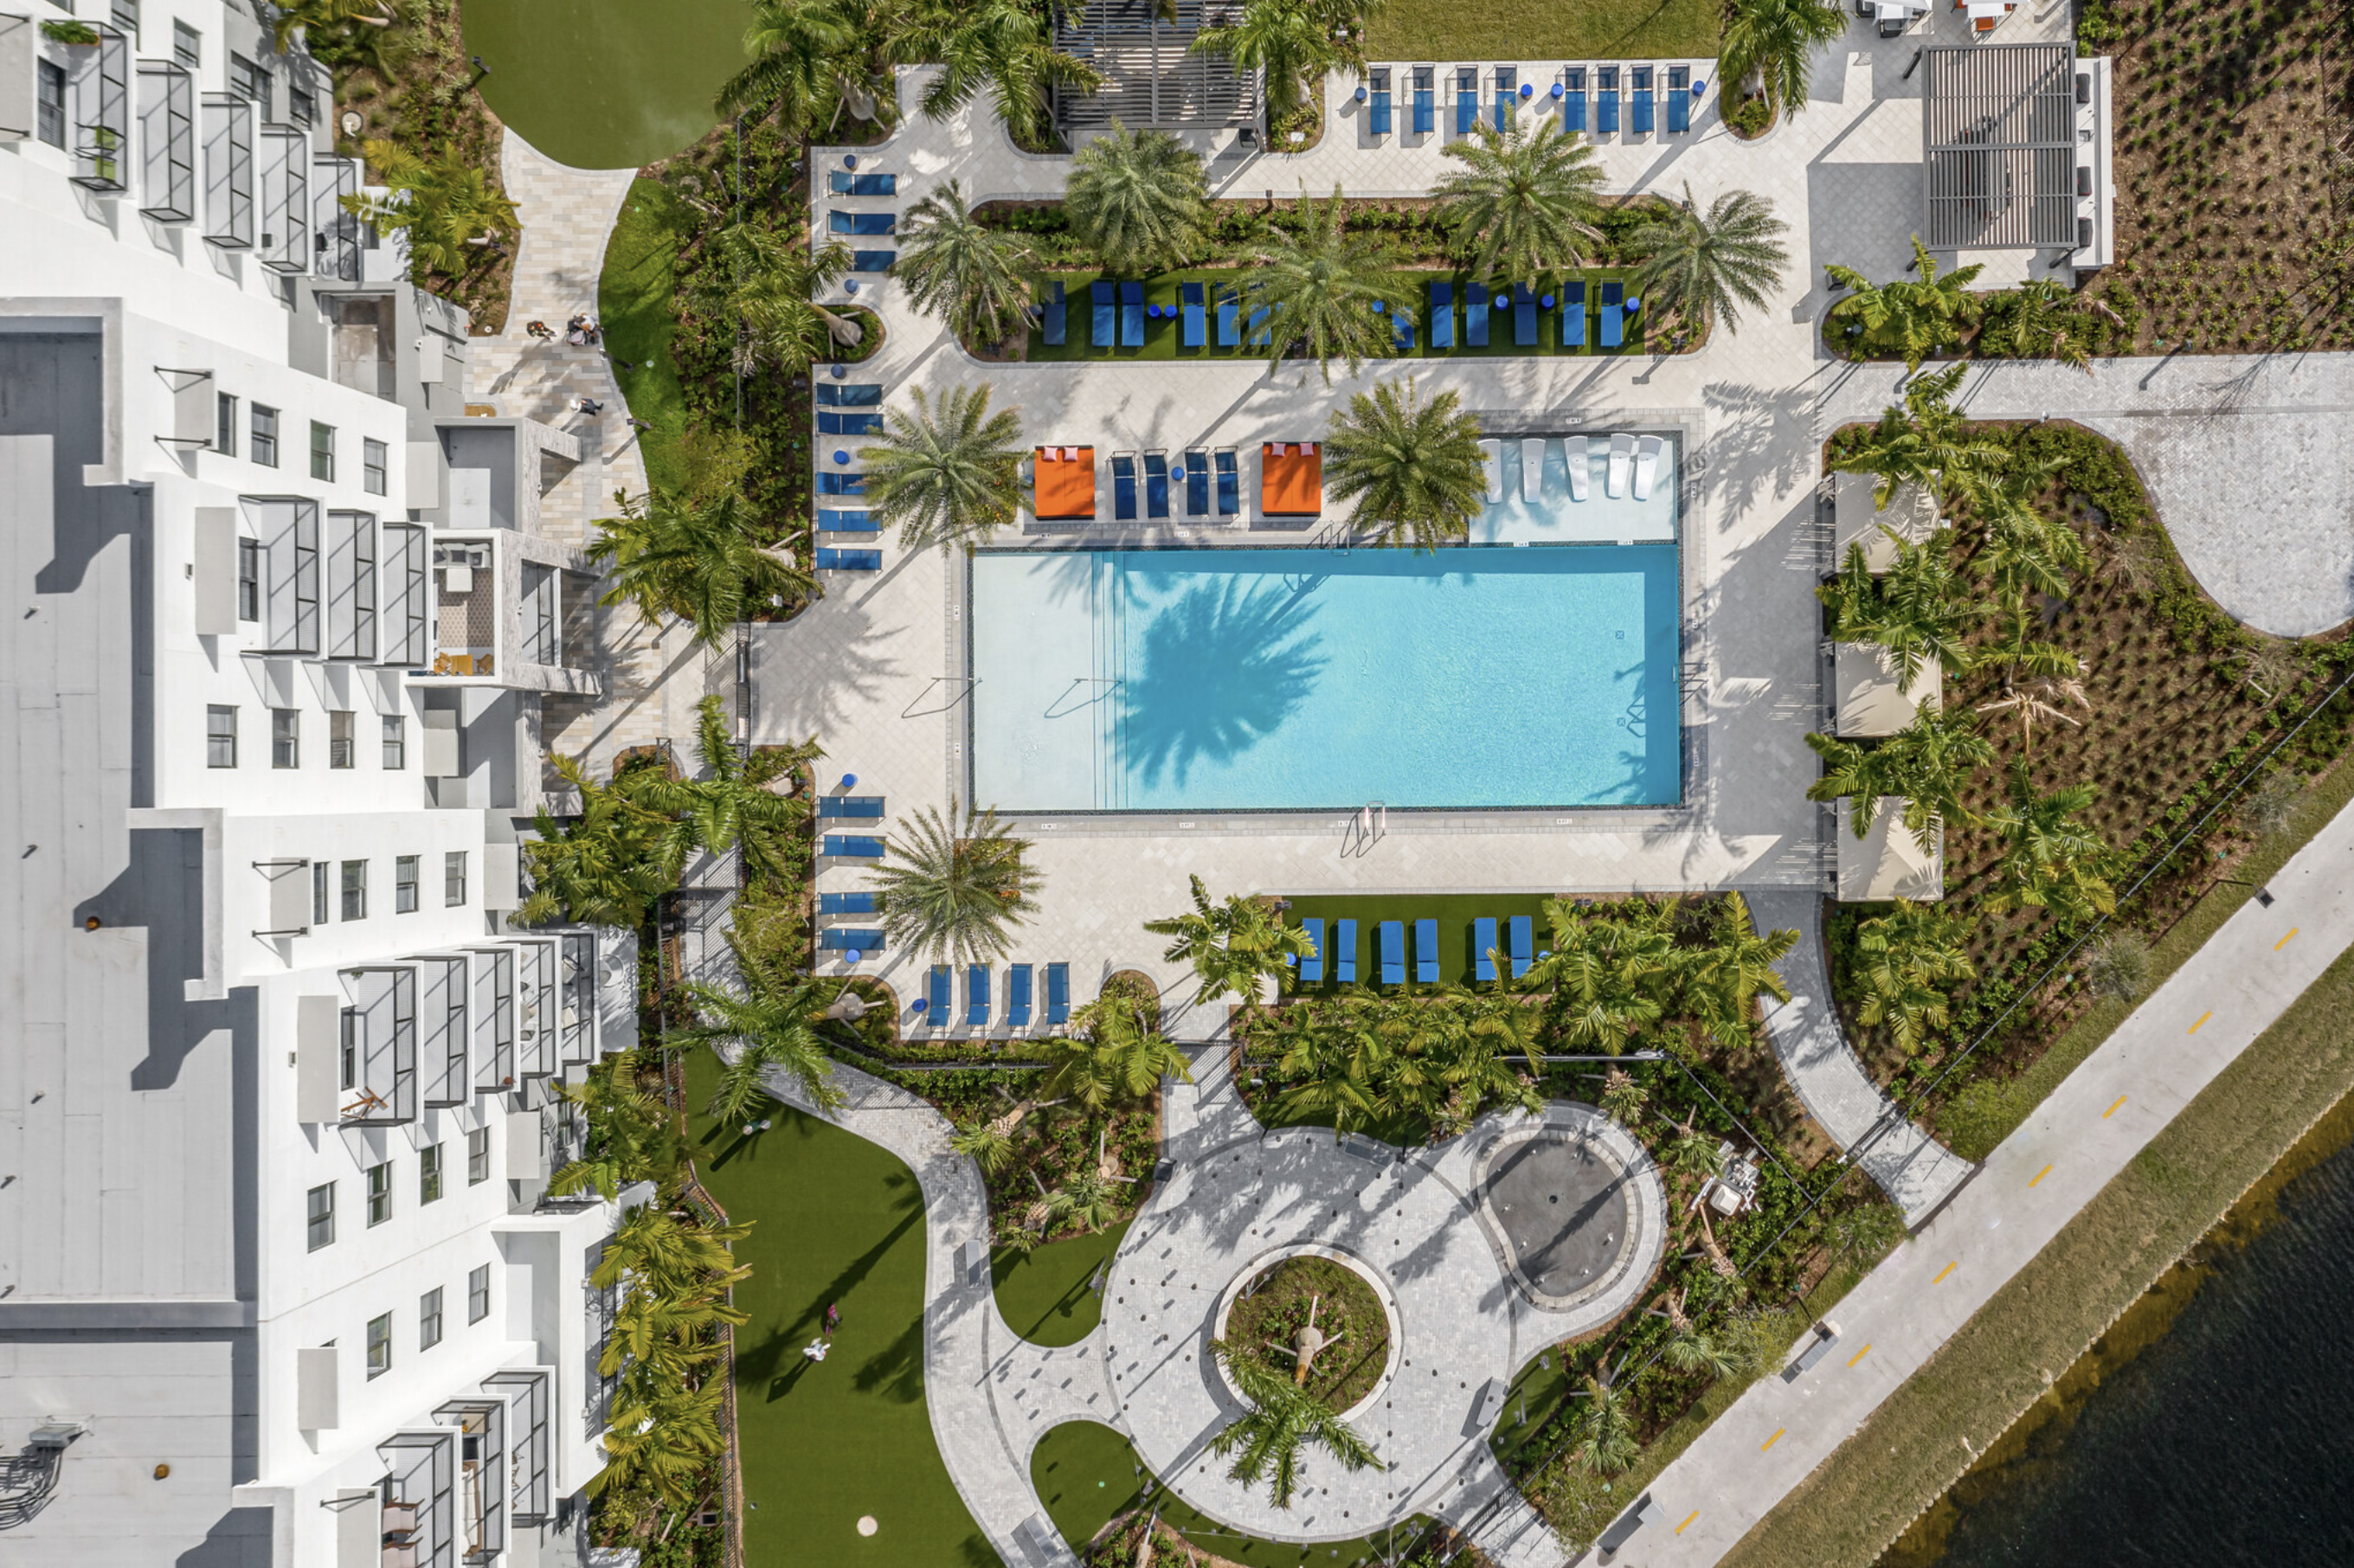 Sky view of Sanctuary doral pool and amenities